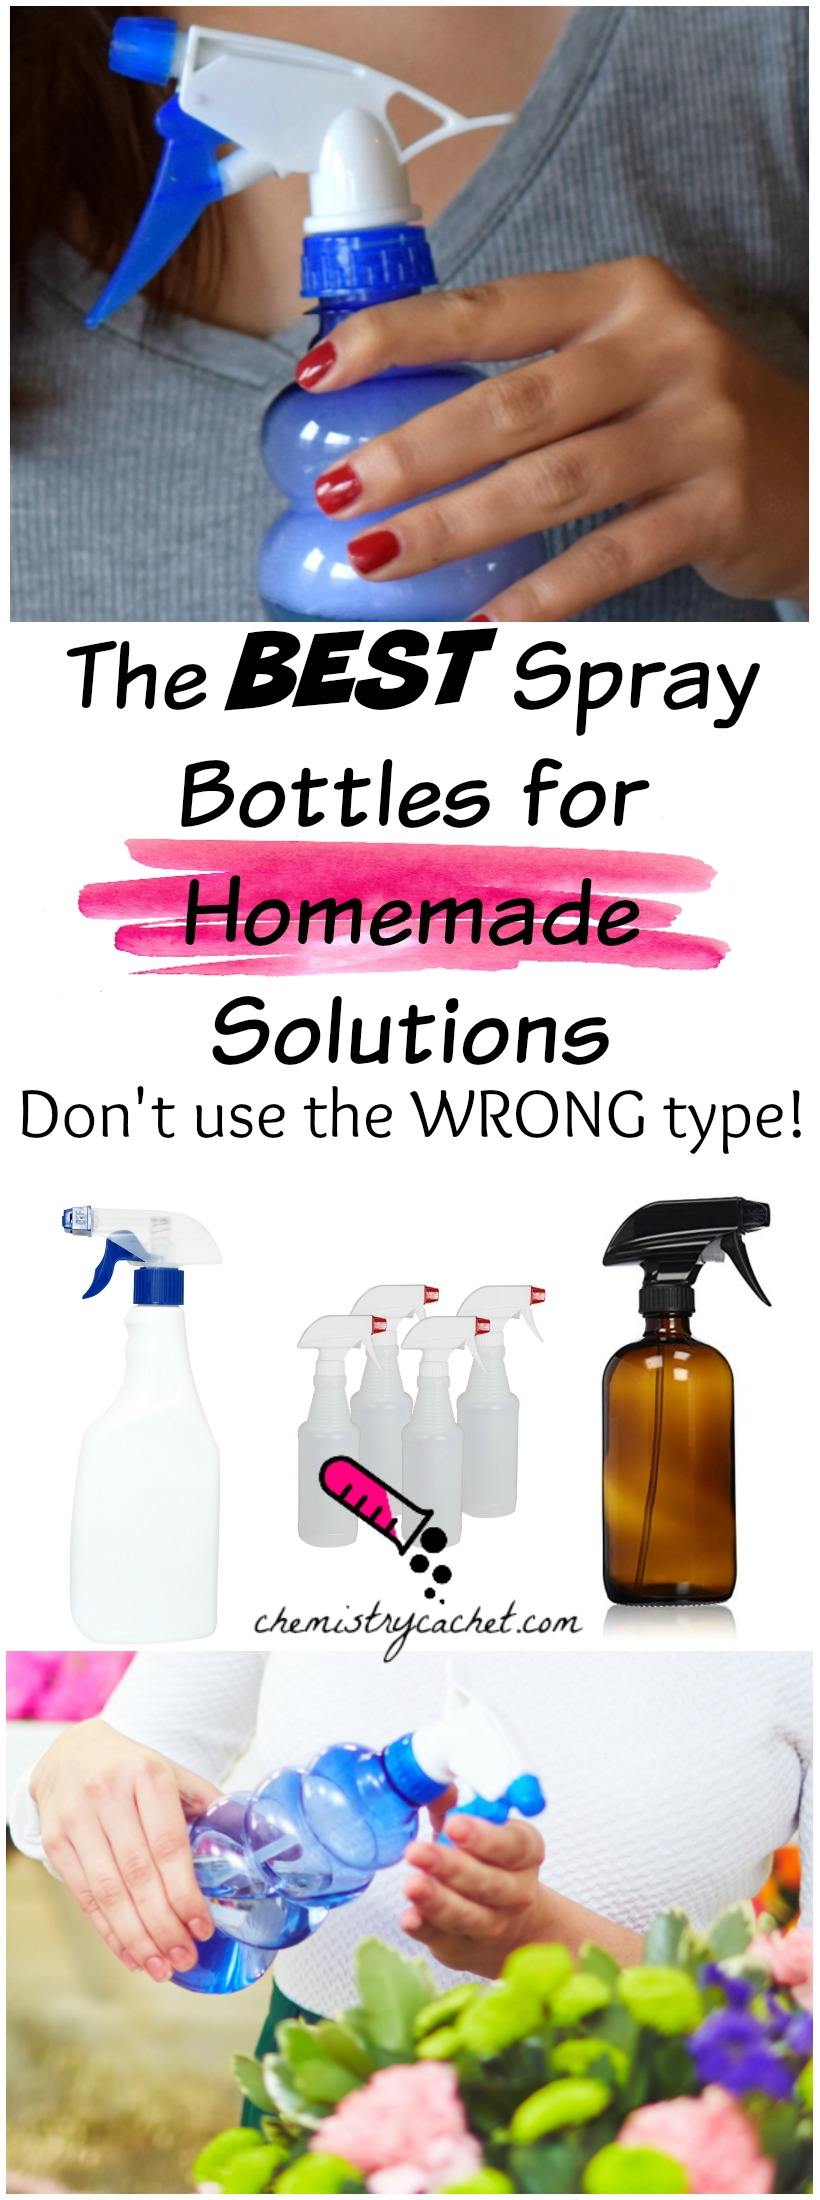 The BEST Spray Bottles for Homemade Solutions...you could be using the wrong type! best spray bottles on chemistrycachet.com